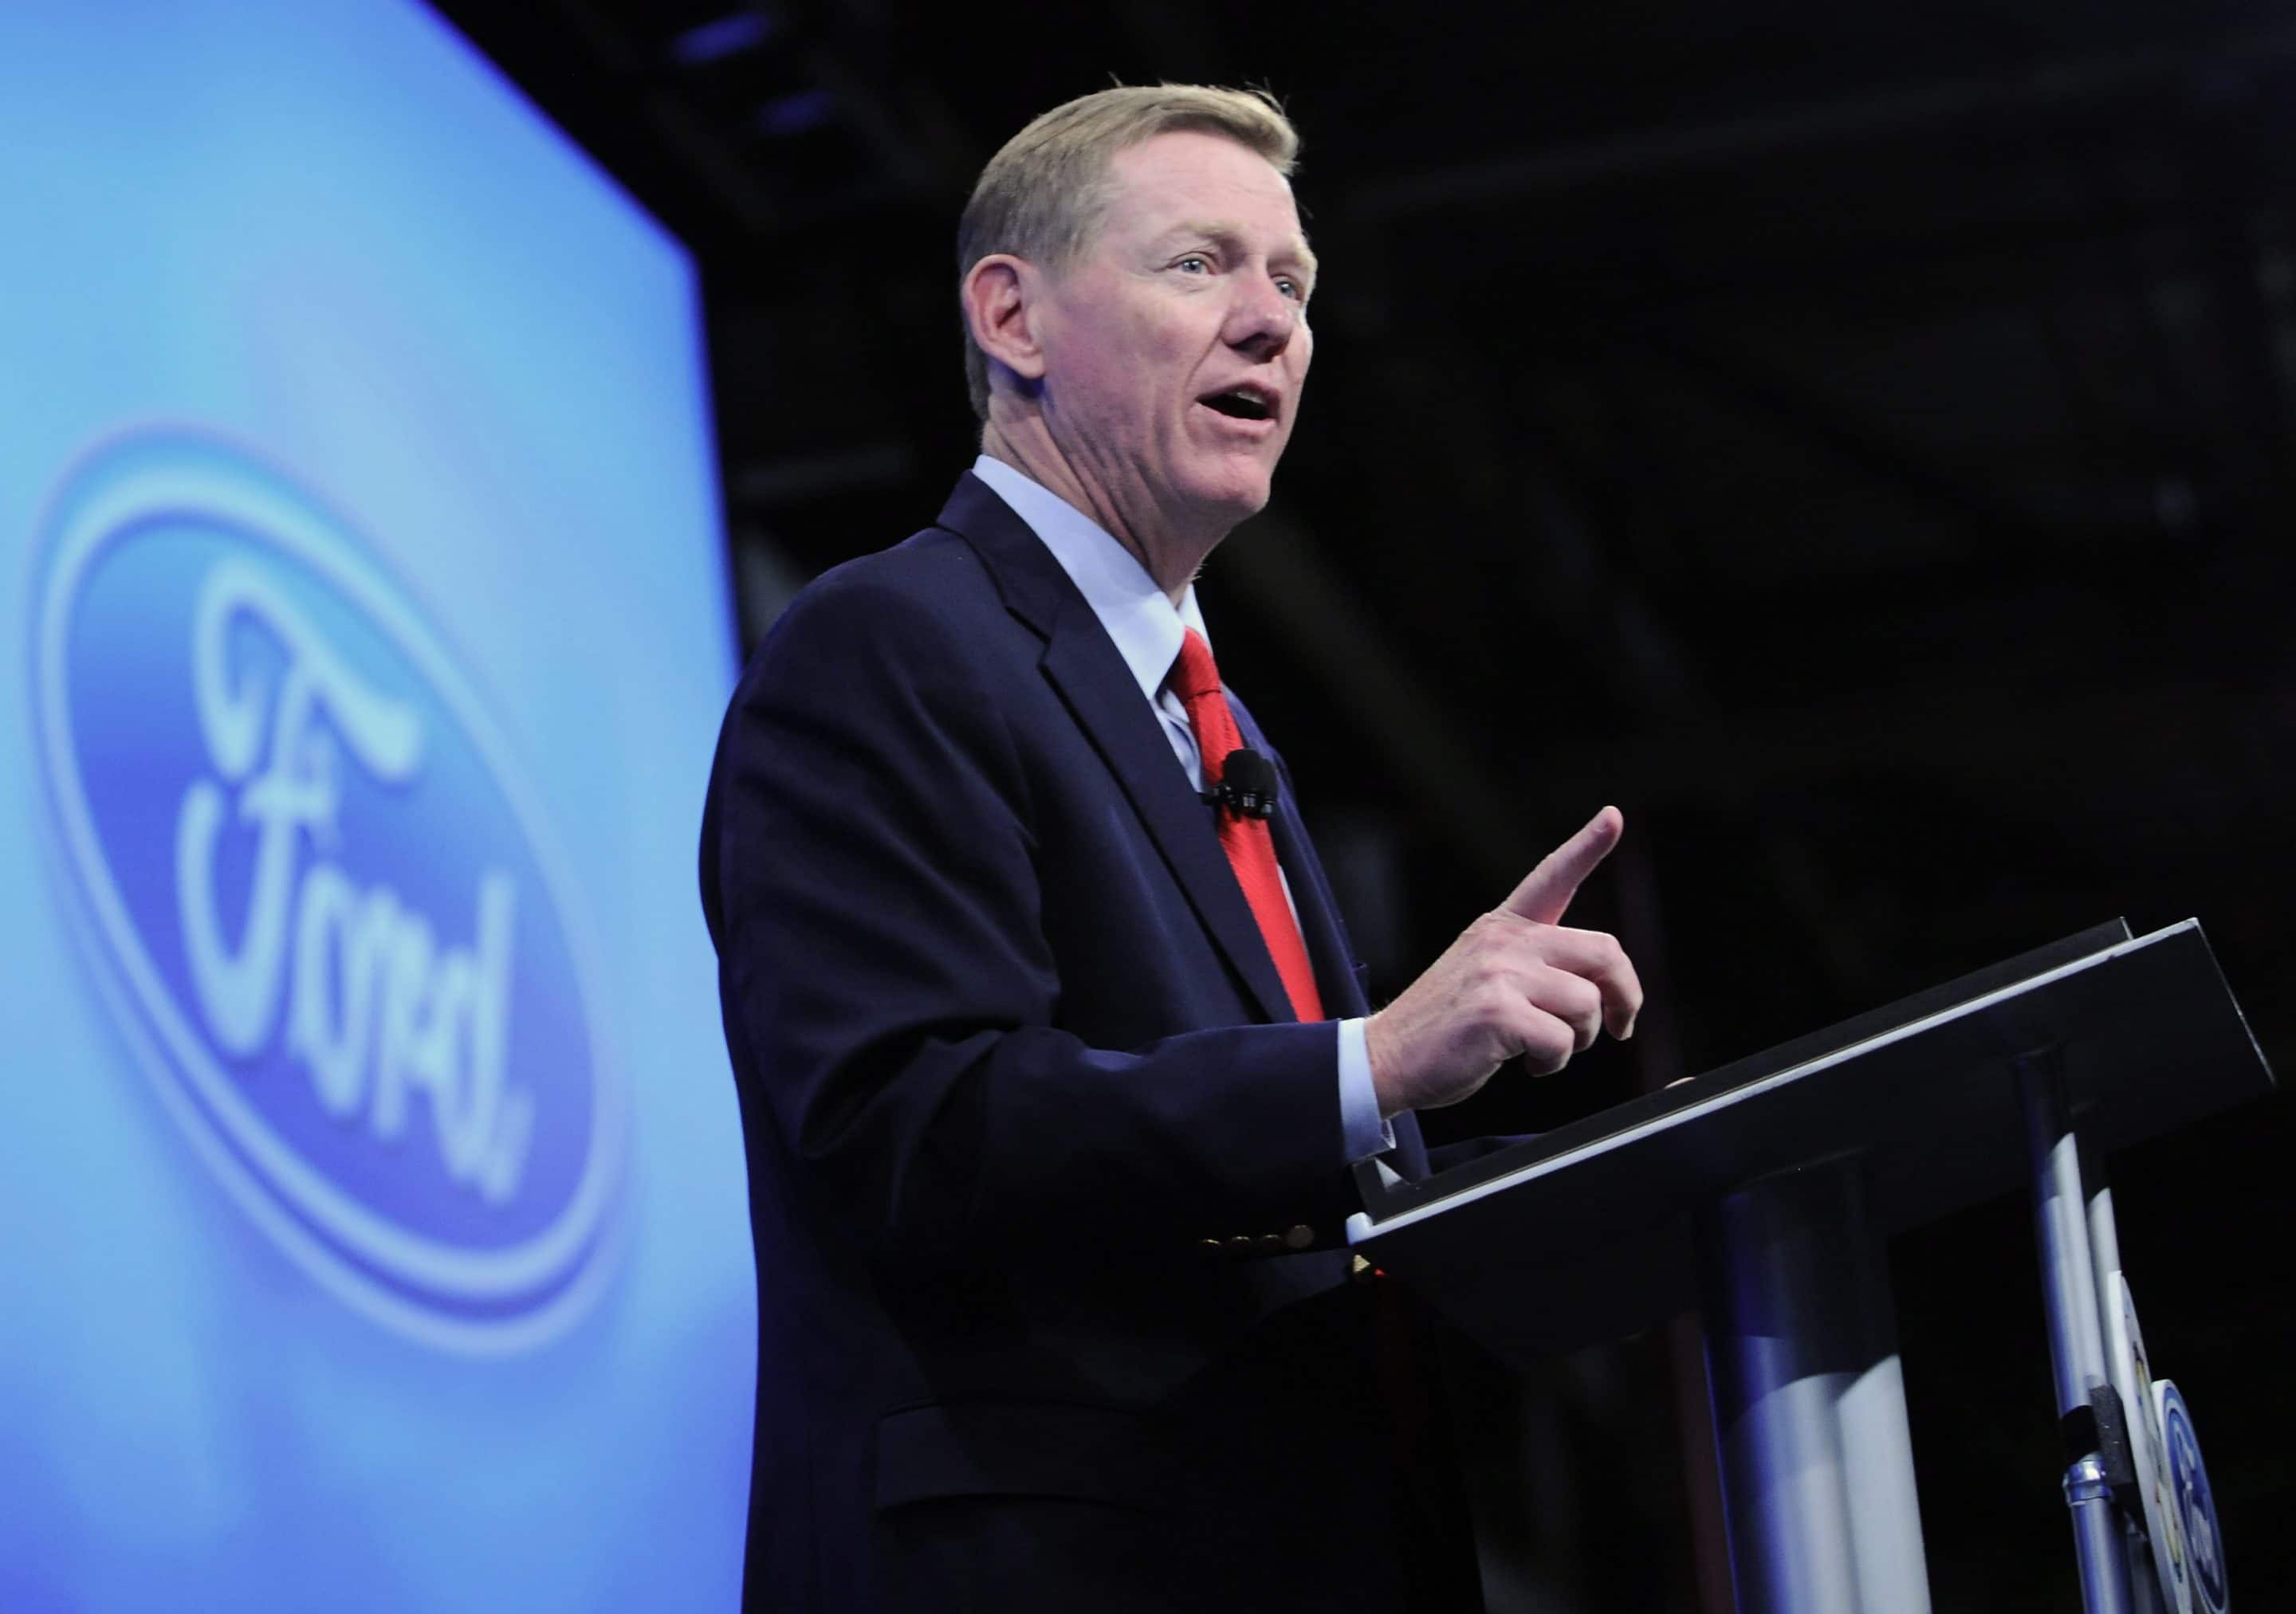 Ford Delivers Strong $2.1 Bil Q1 Profit